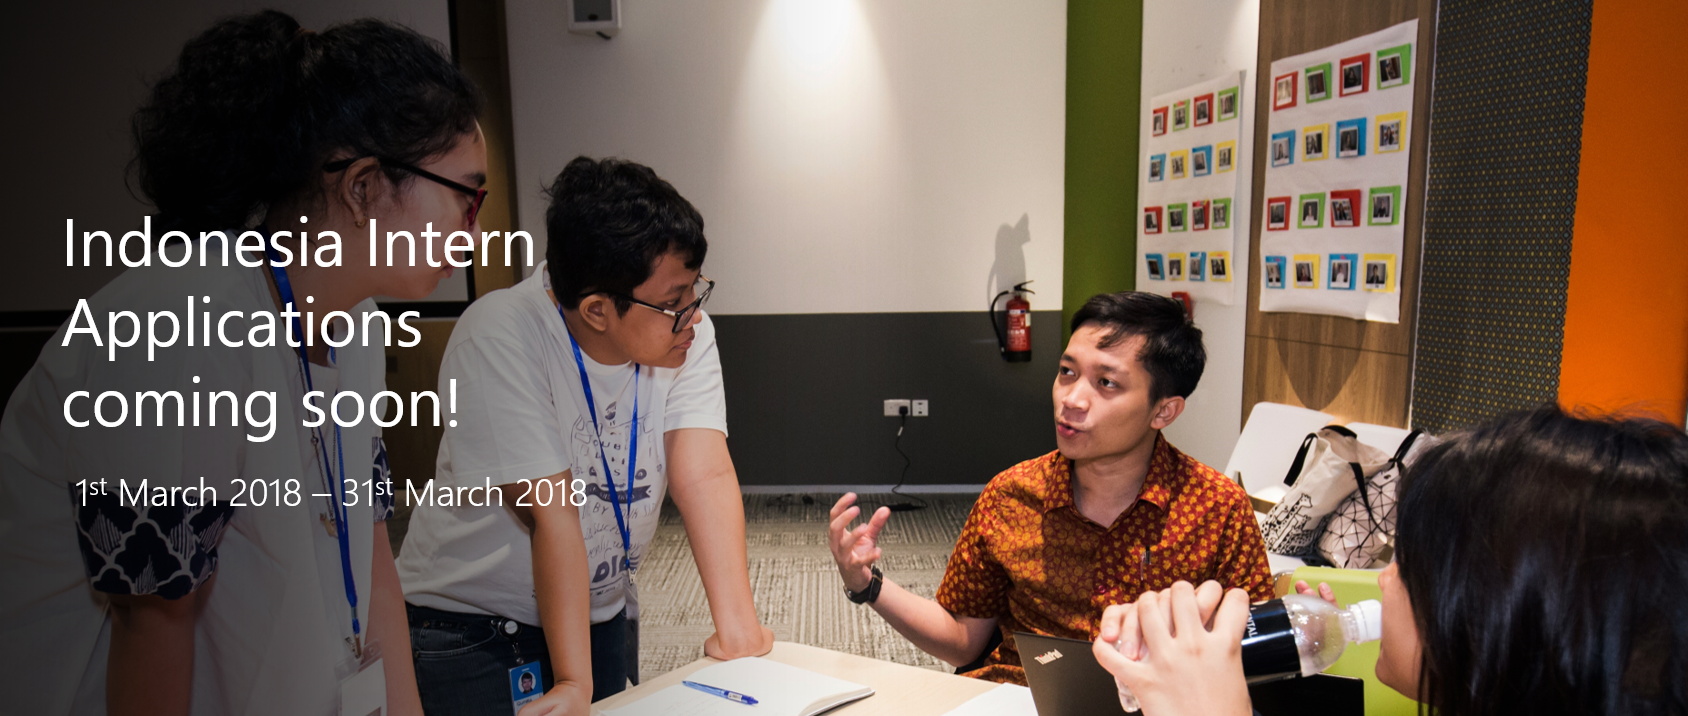 Indonesia Intern Applications coming soon!